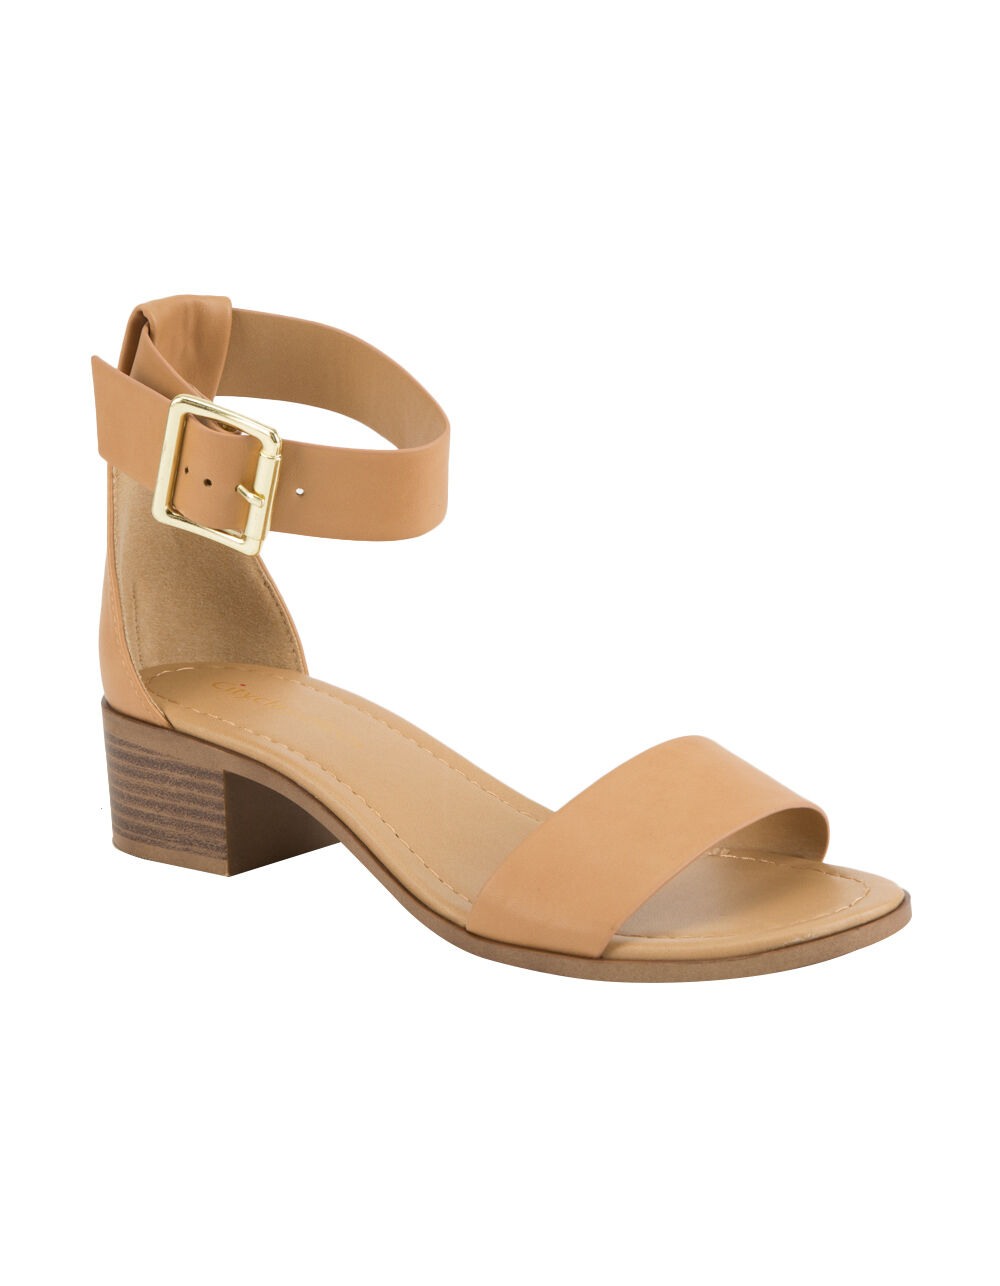 CITY CLASSIFIED SIMPLE STRAP CAMEL HEELED SANDAL